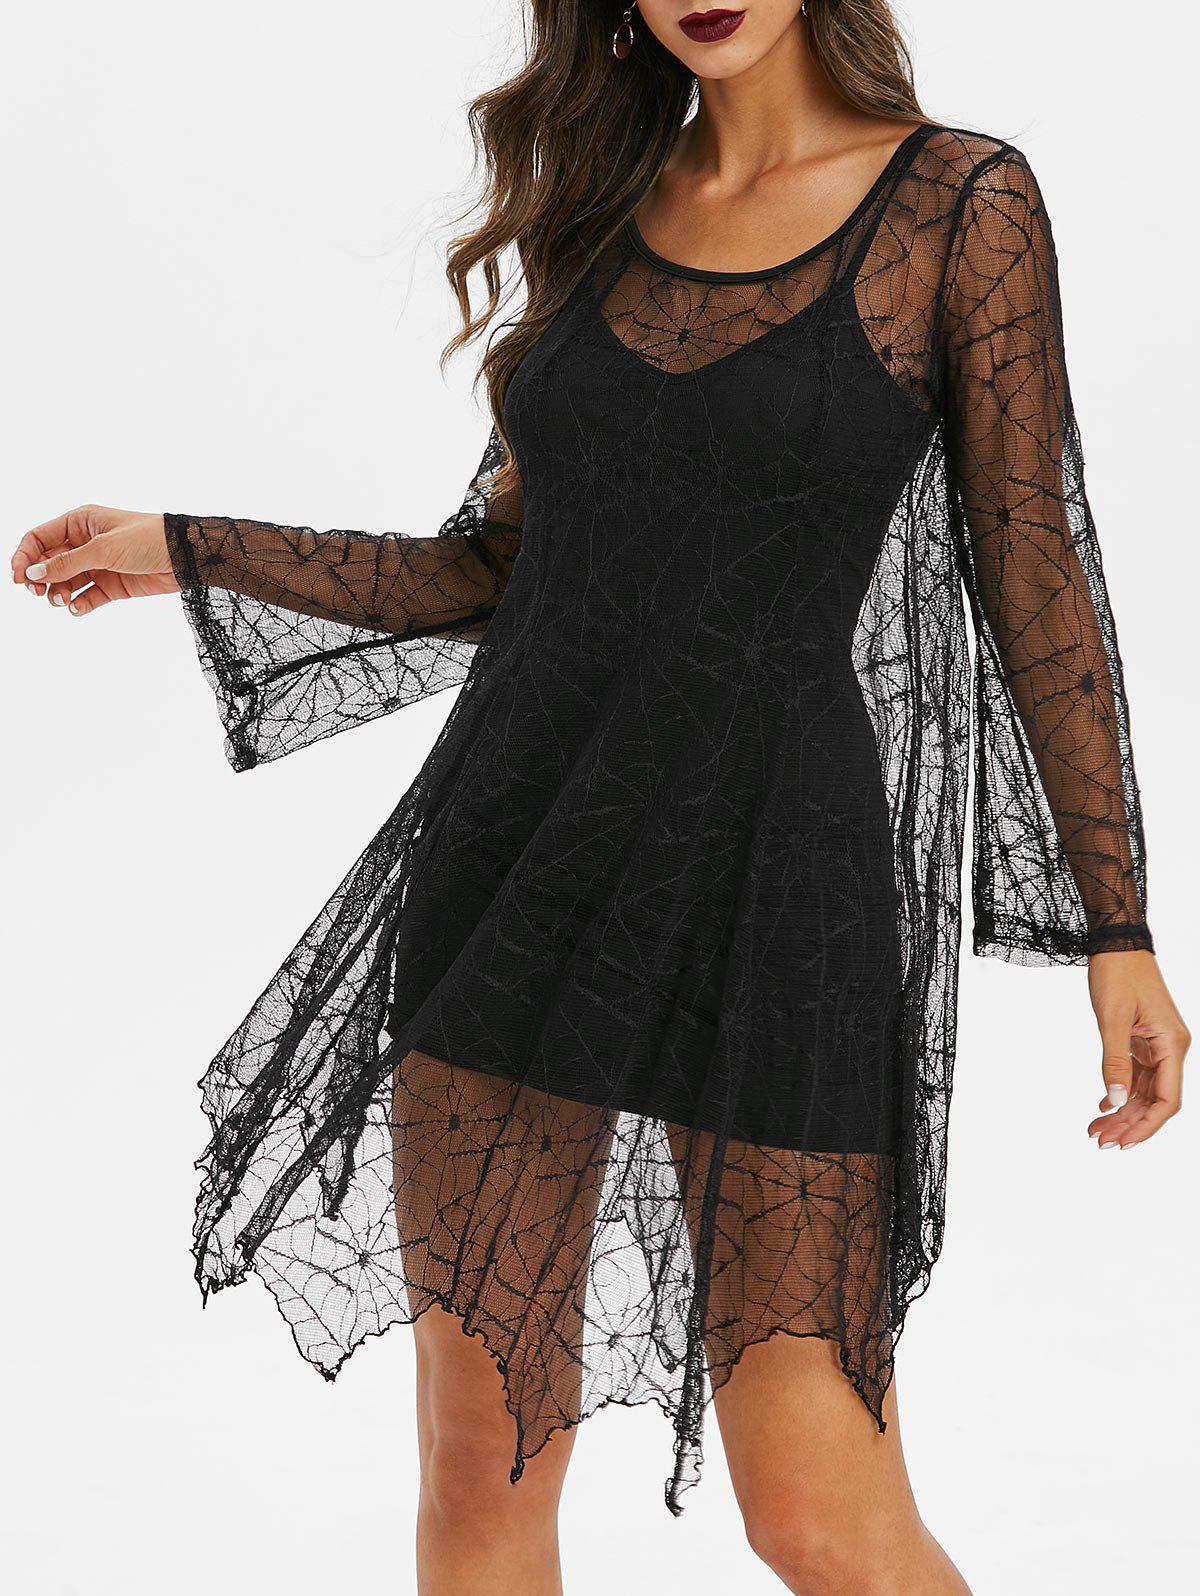 Fashion Spider Web Lace Dress And Cami Dress Gothic Set